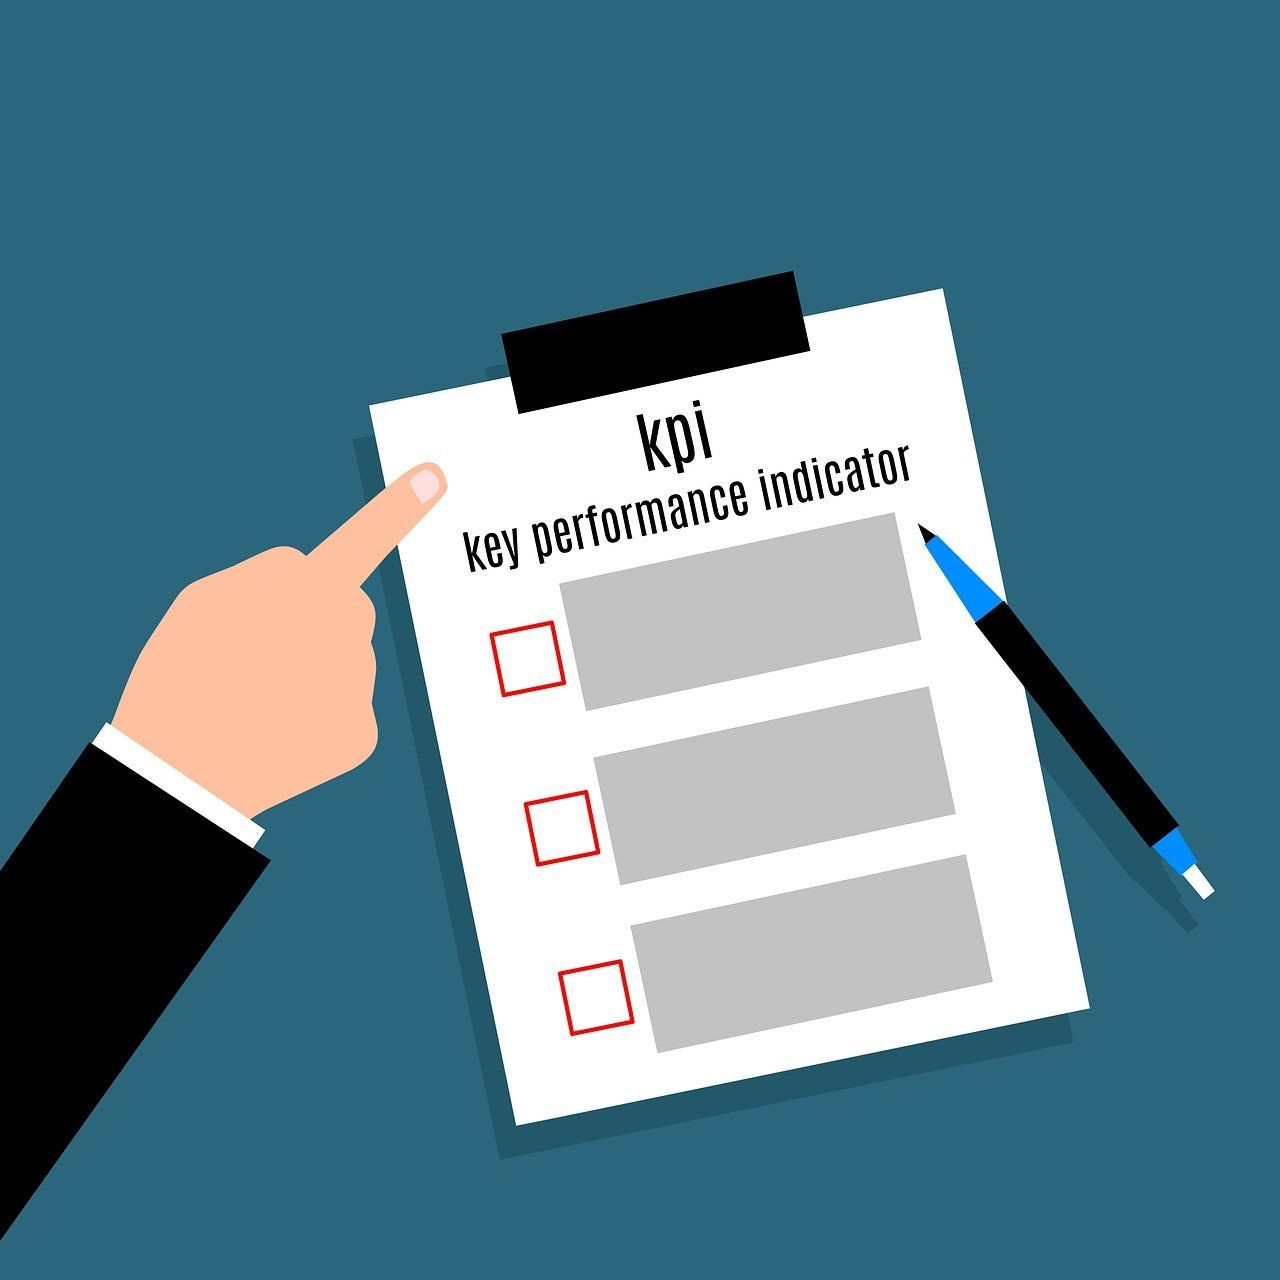 KPIs or Key Performance Indicators are used to measure the performance of any business